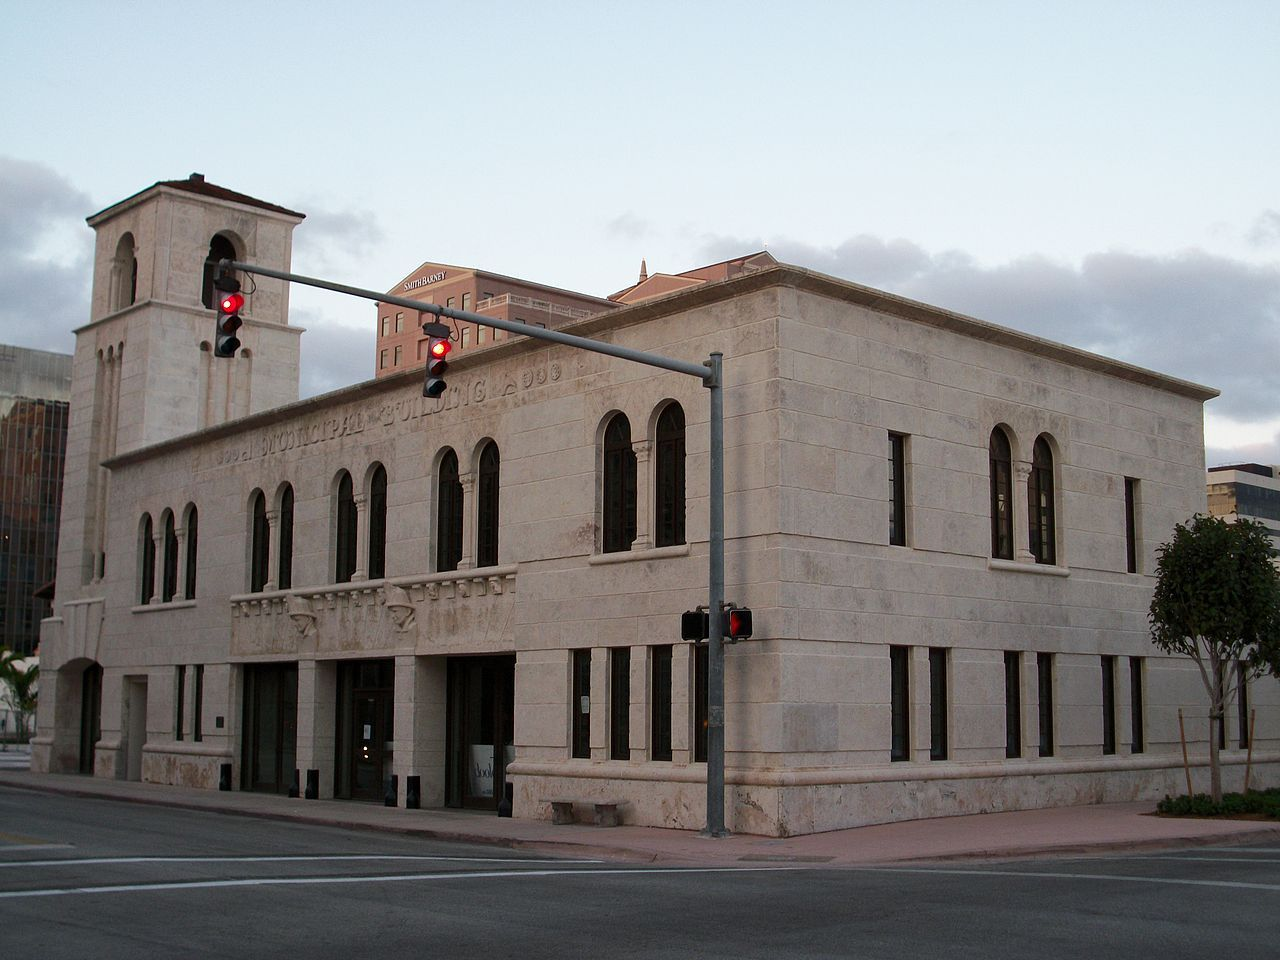 Coral Gables Police And Fire Station In Miami Dade County